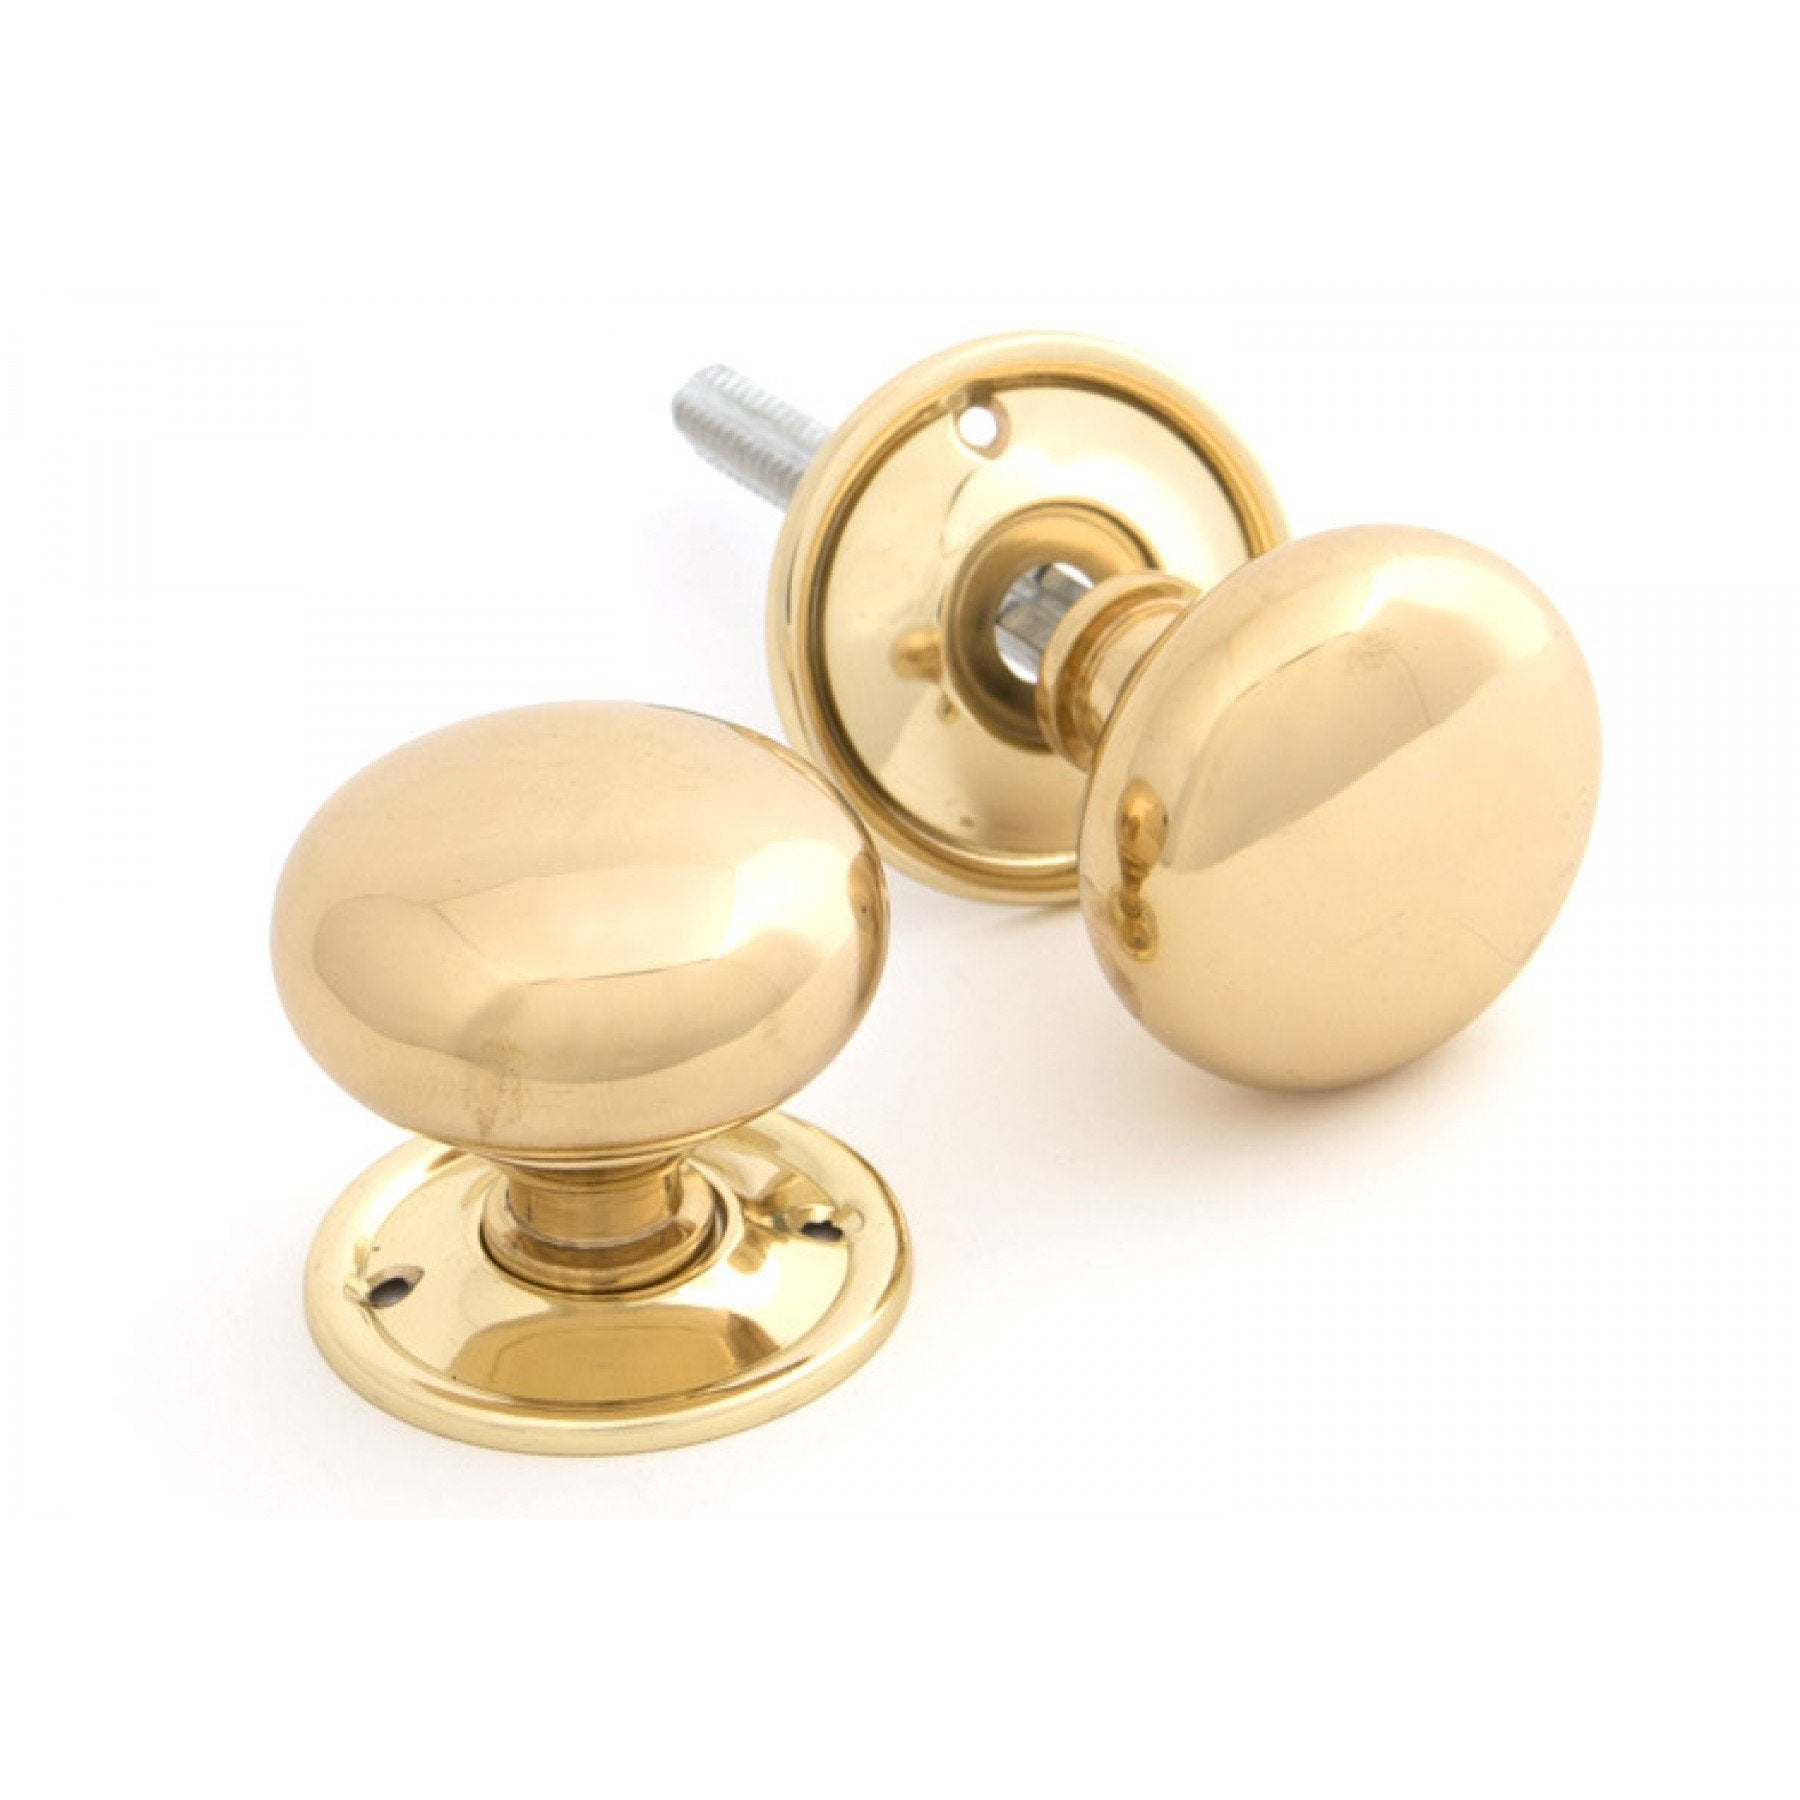 Polished Brass Mushroom Knob Set